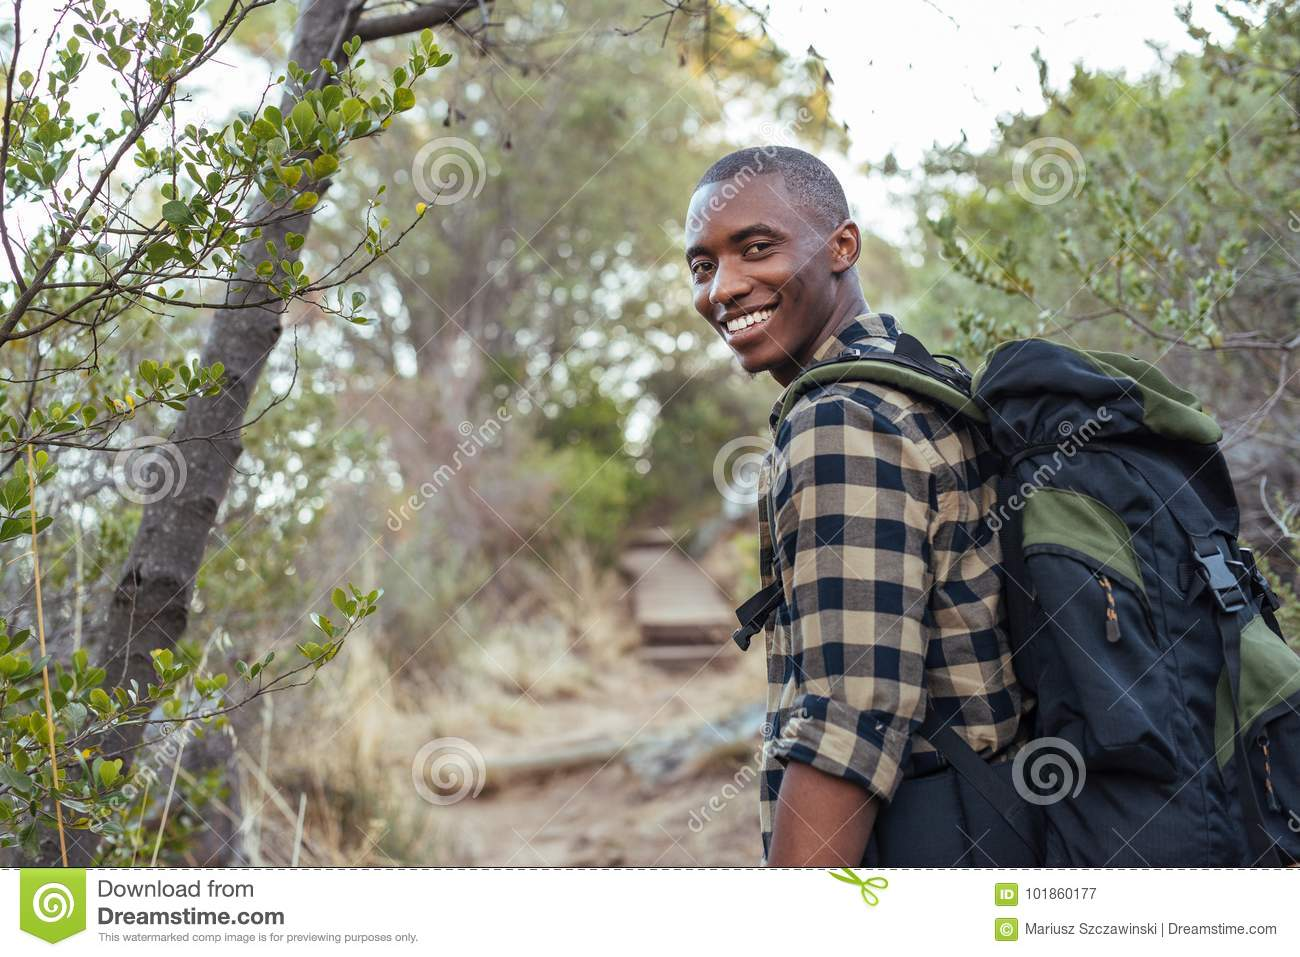 Smiling young African man hiking in the hills